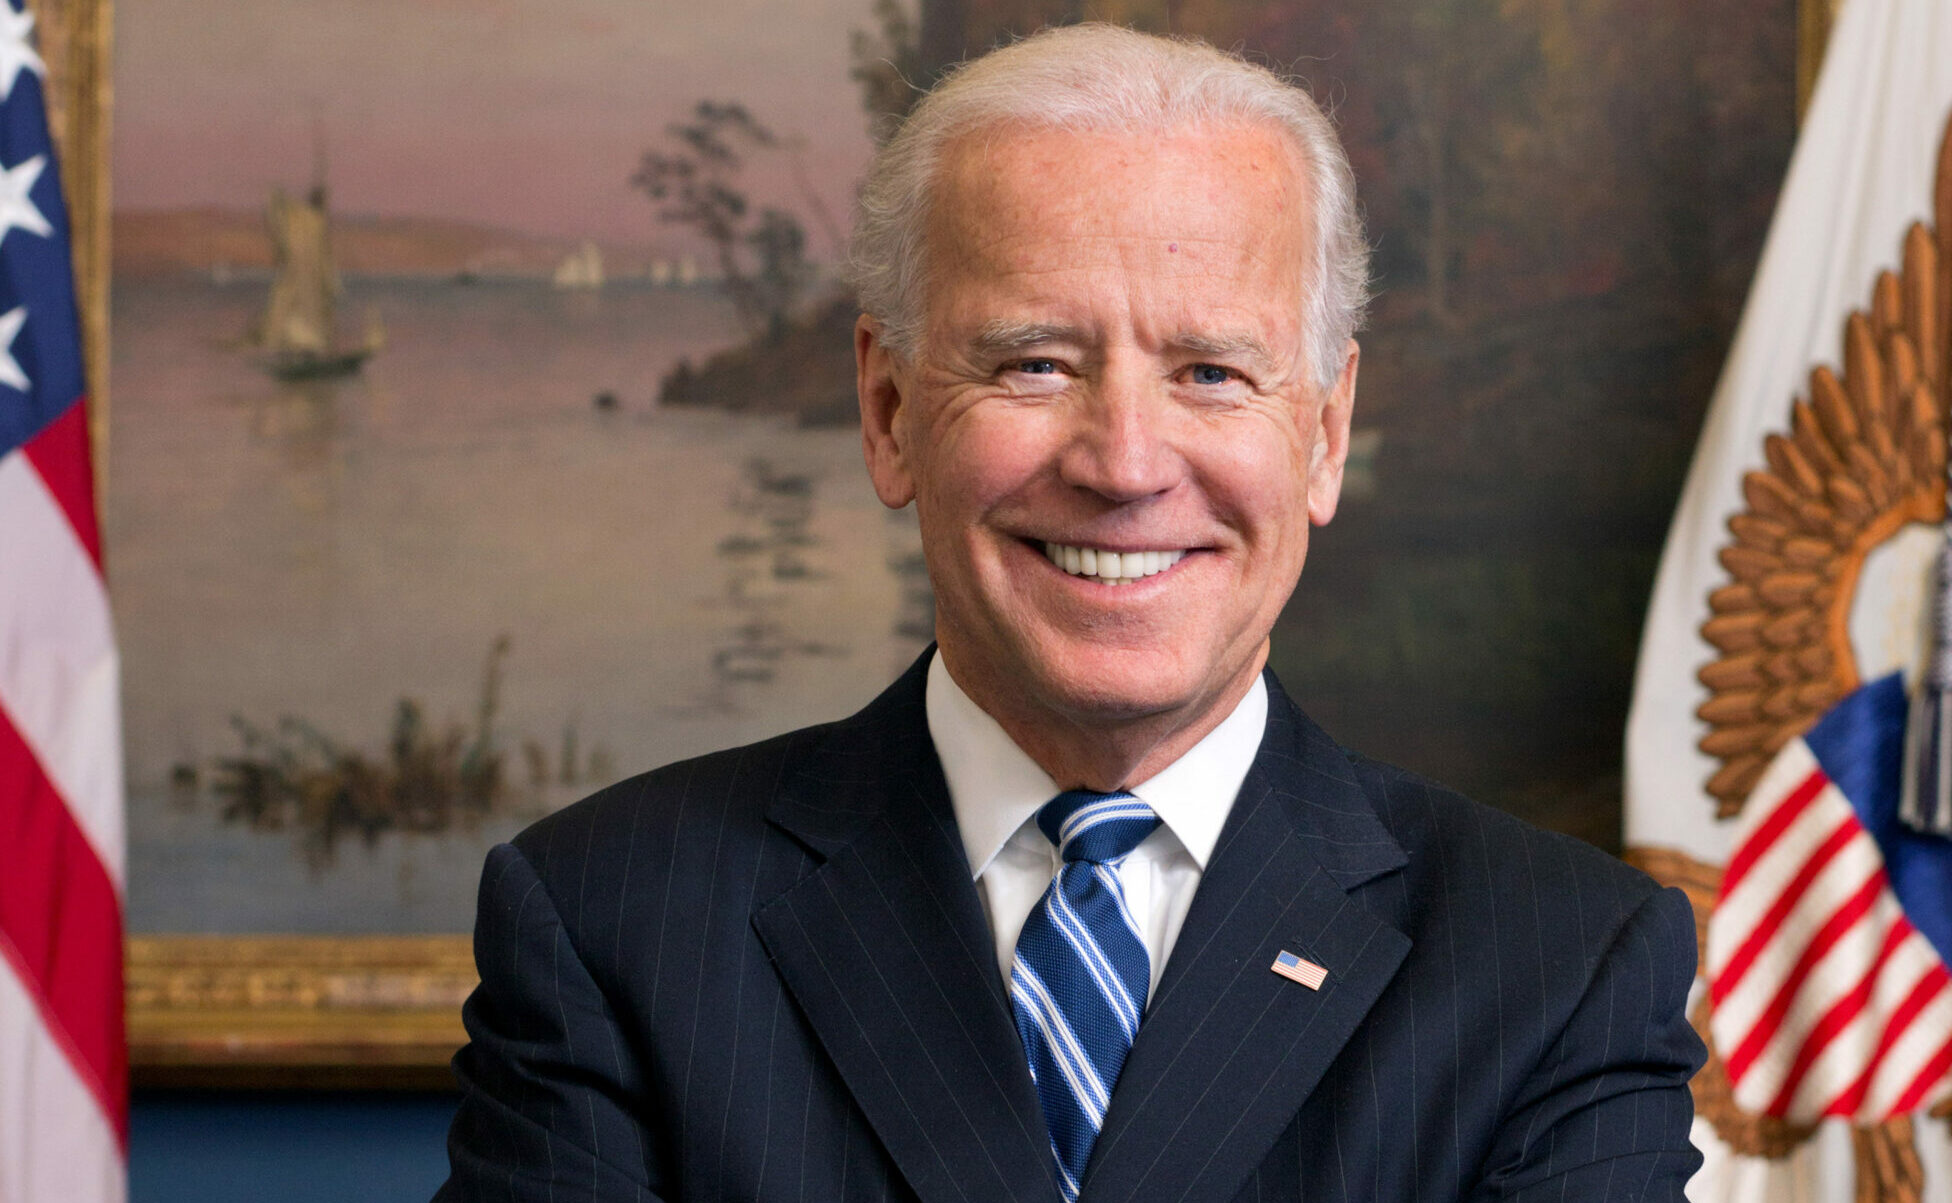 With a Biden presidency, Latin American governments will have to step up to the plate